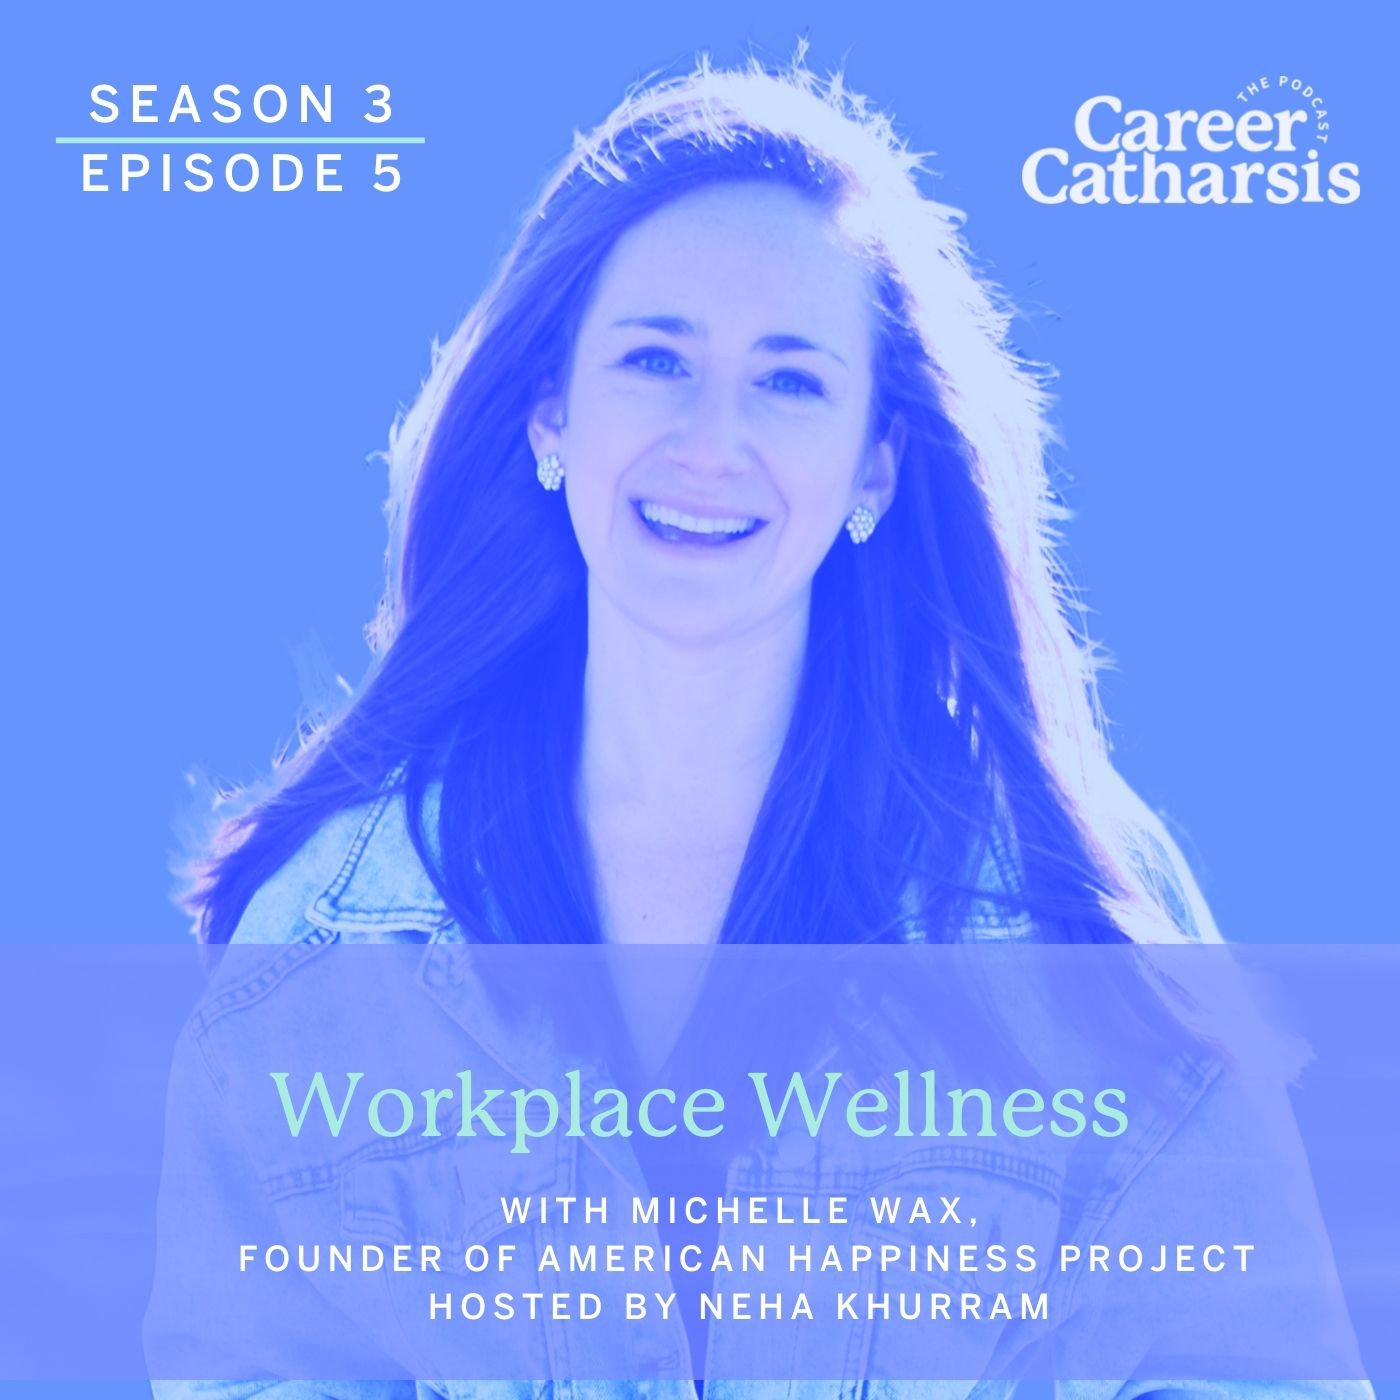 Workplace Wellness with Michelle Wax, Founder of American Happiness Project